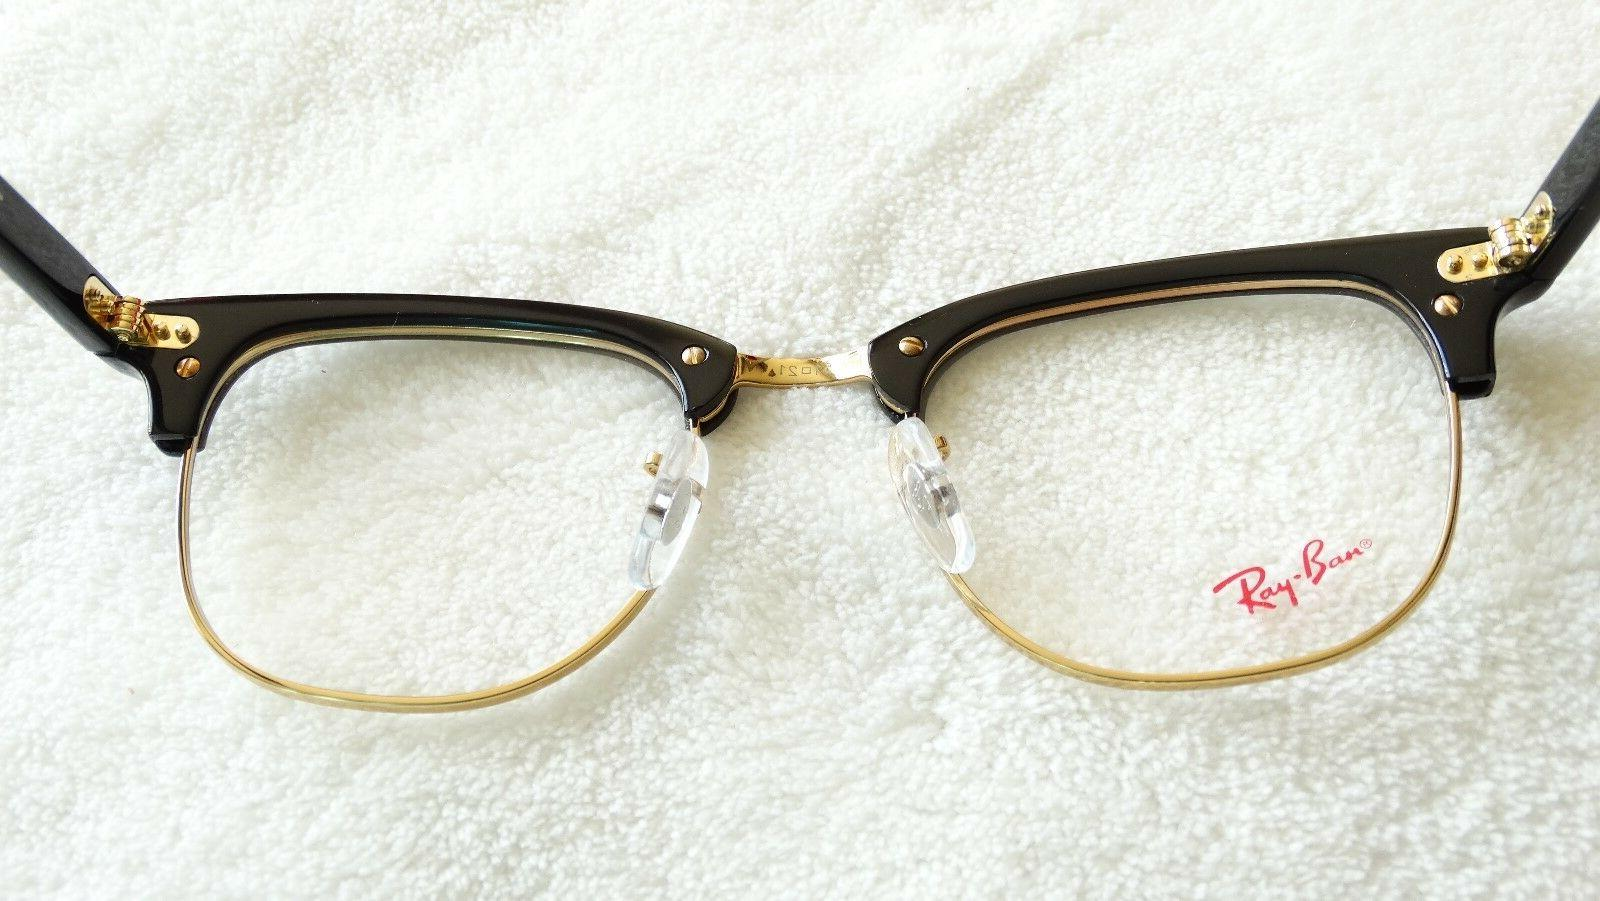 BRAND NEW! RAY-BAN RB 5154 SIZE 51 MM GOLD